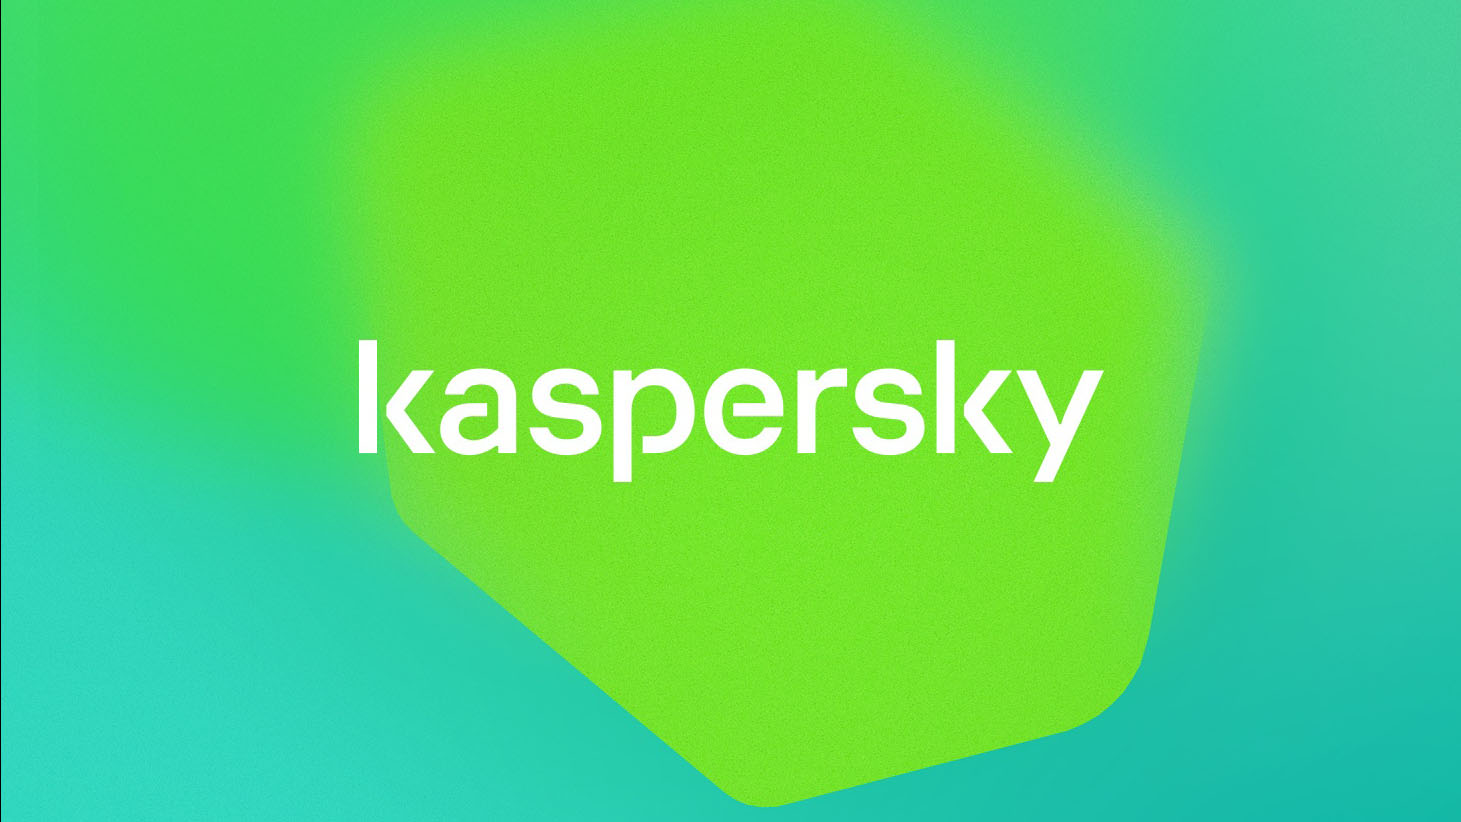 Kaspersky Lab Anti-Virus 2018 Review - Pros, Cons and